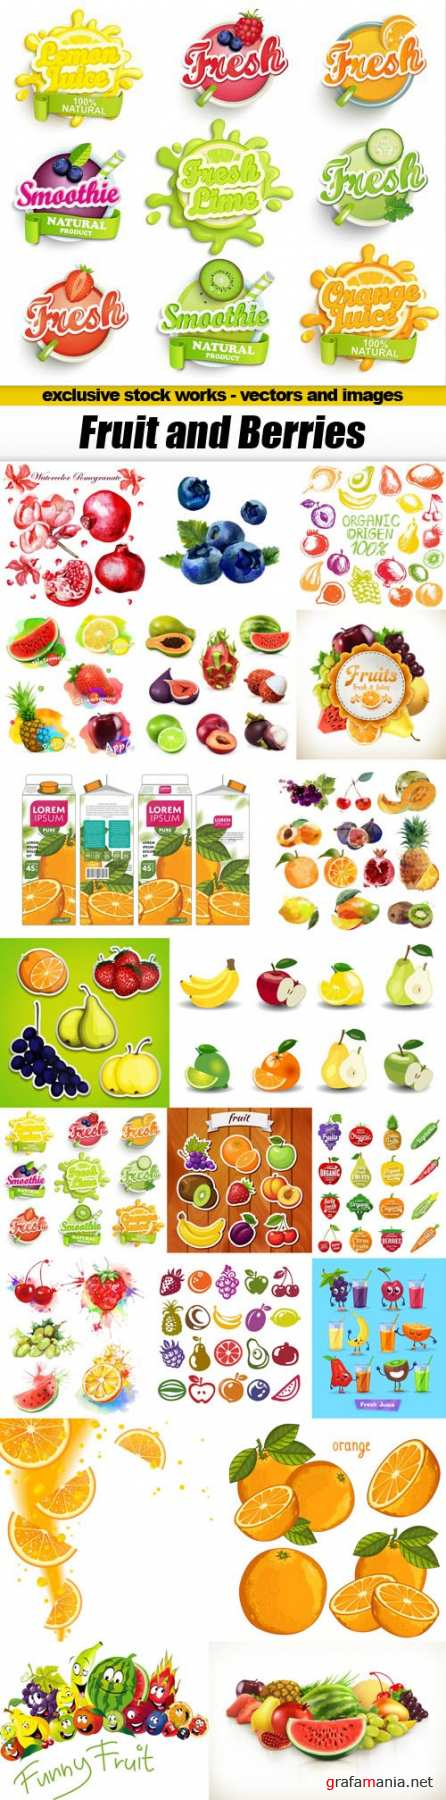 Fruit and Berries - 20xEPS